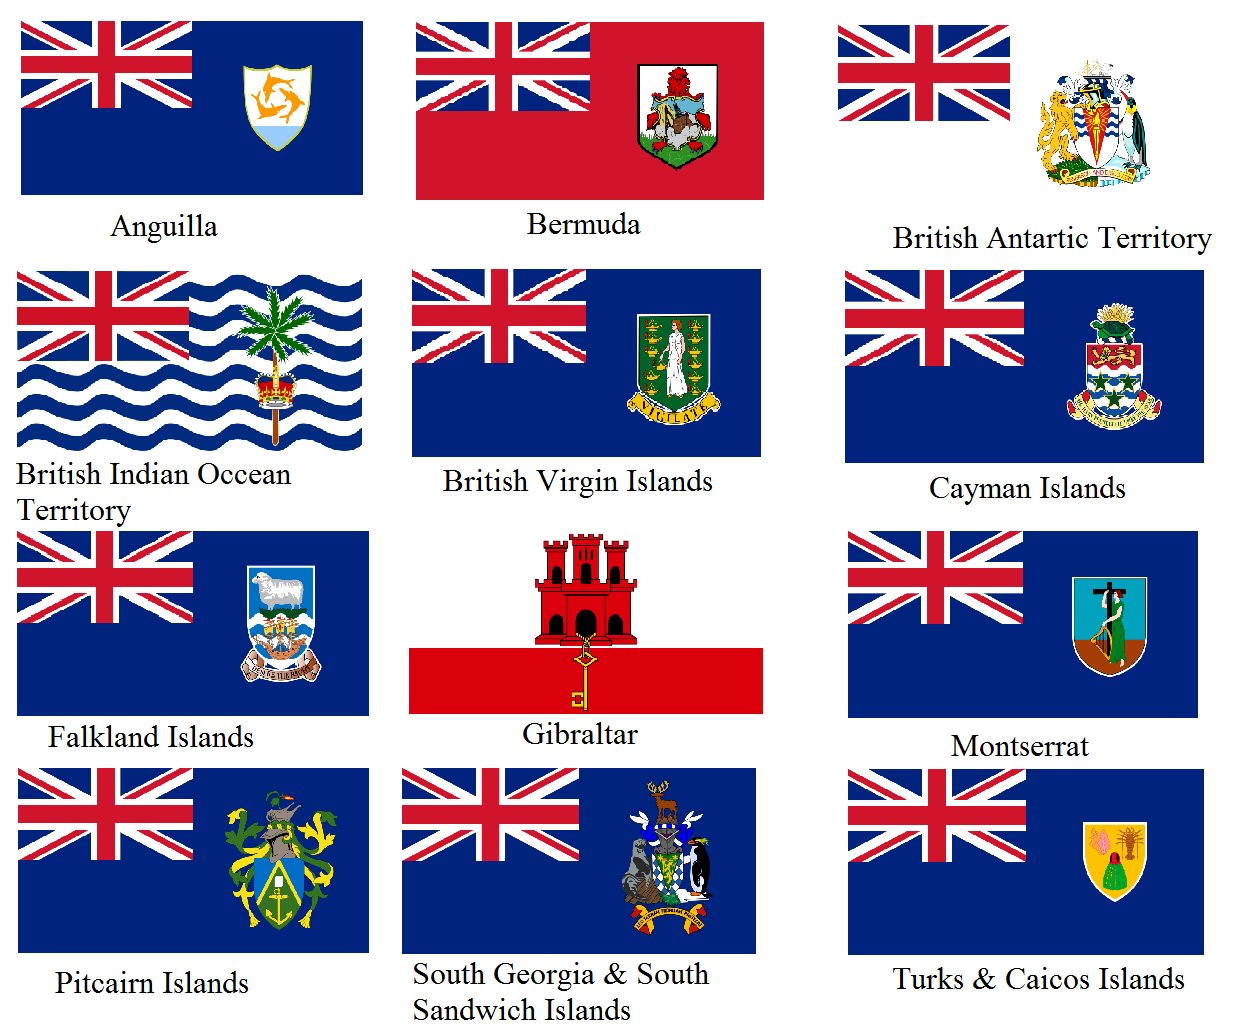 Flag gallery british county flags - Overseas Territories Of The United Kingdom